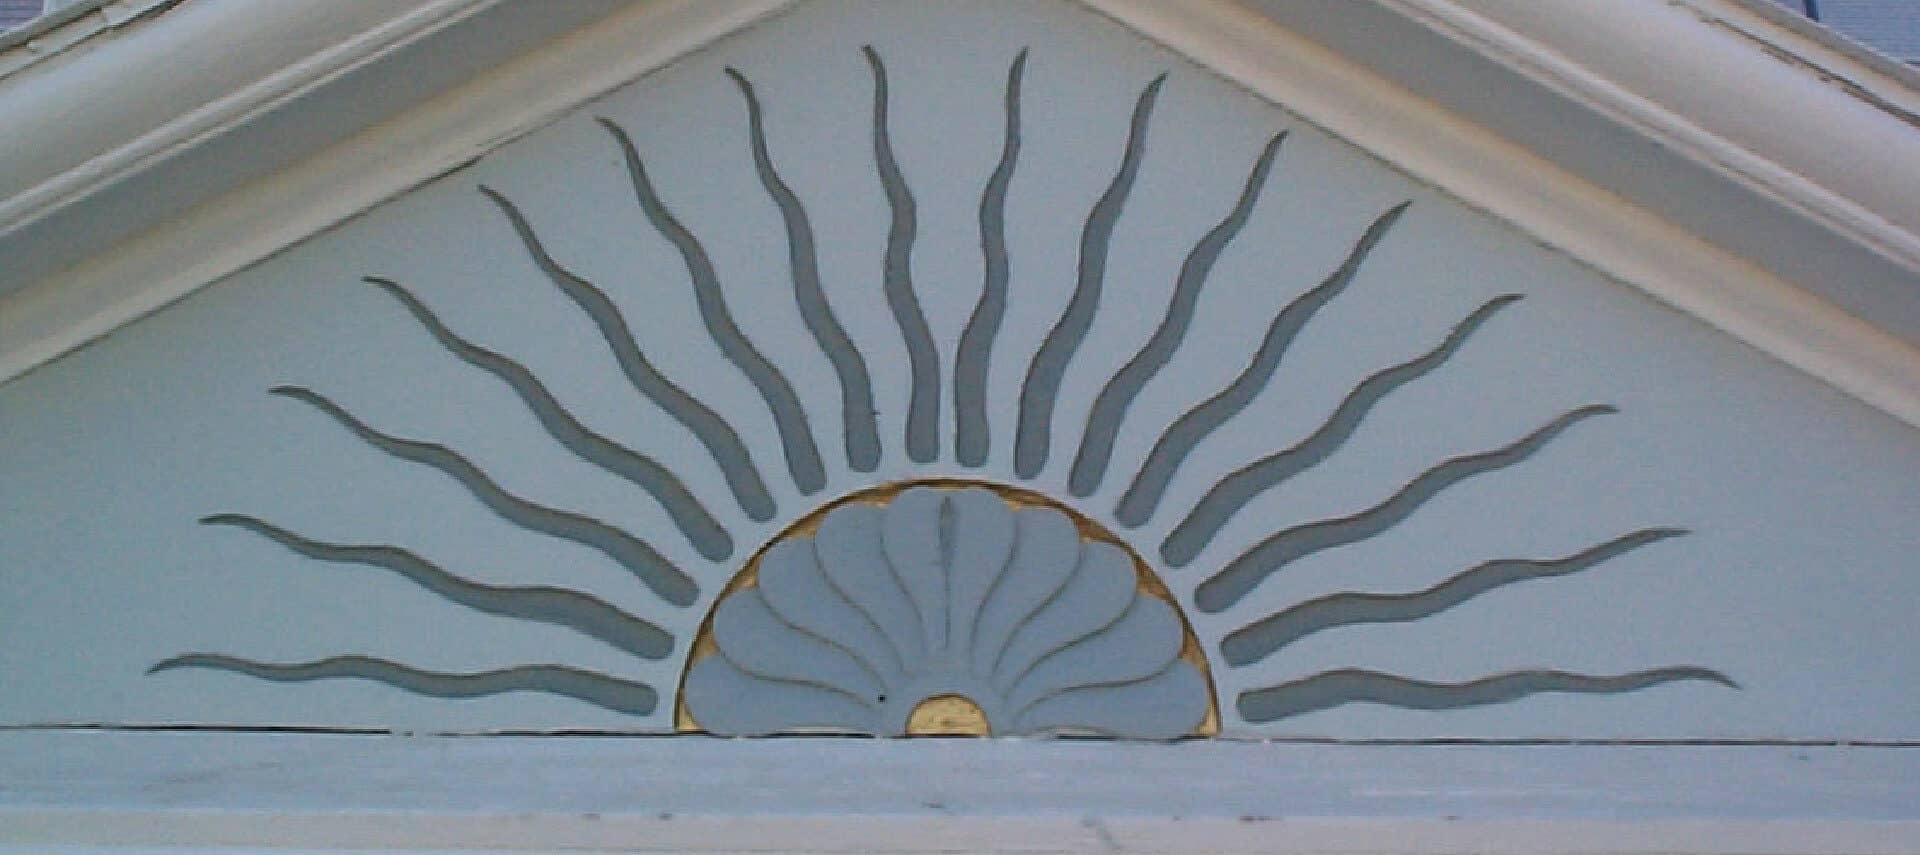 Top peak of the front of a home showing a grey sunburst pattern